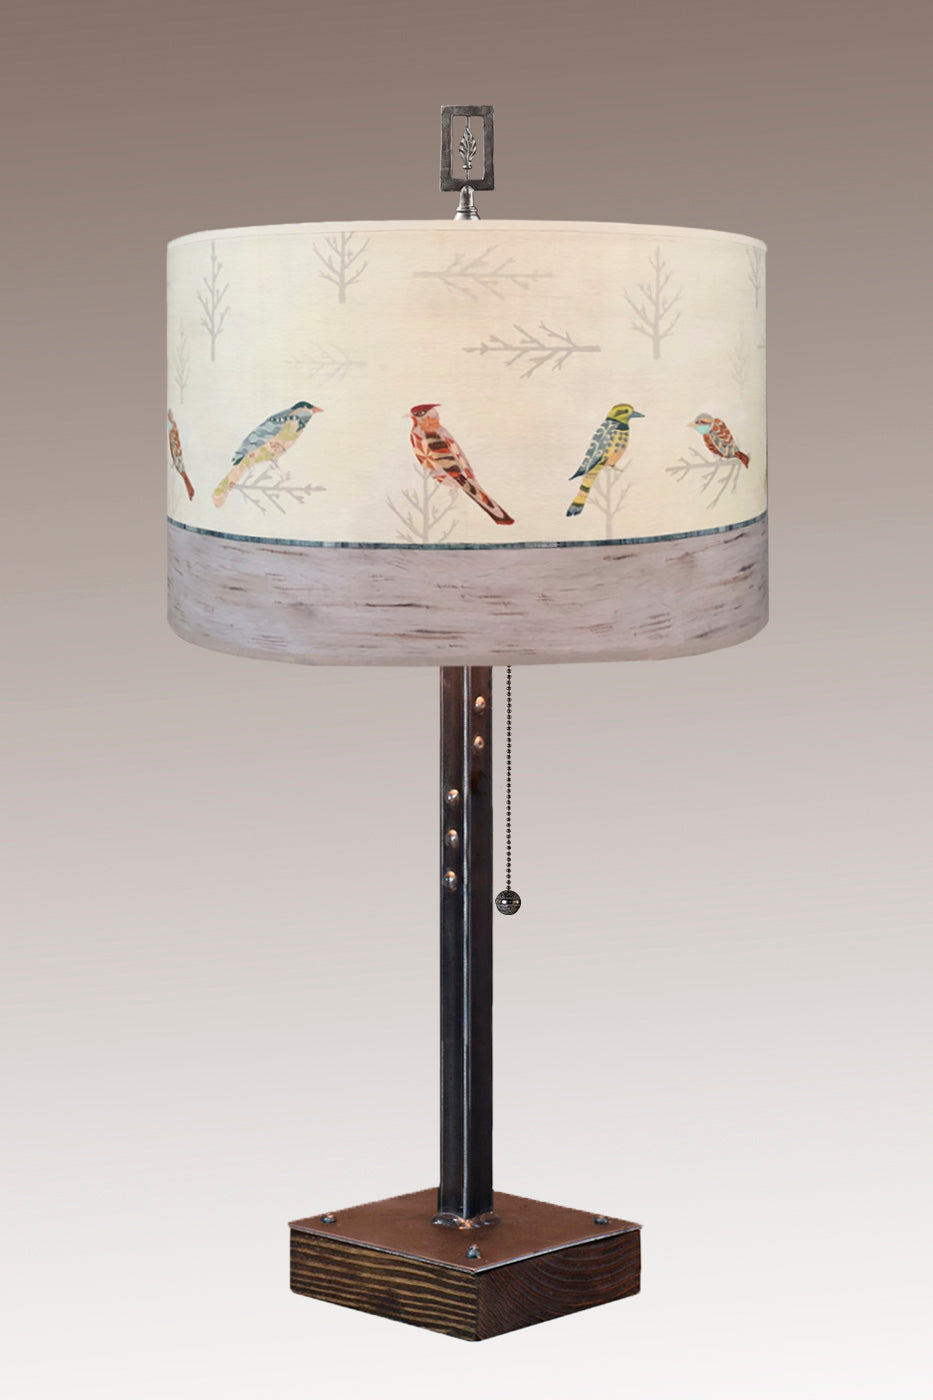 Steel Table Lamp on Wood with Large Drum Shade in Bird Friends